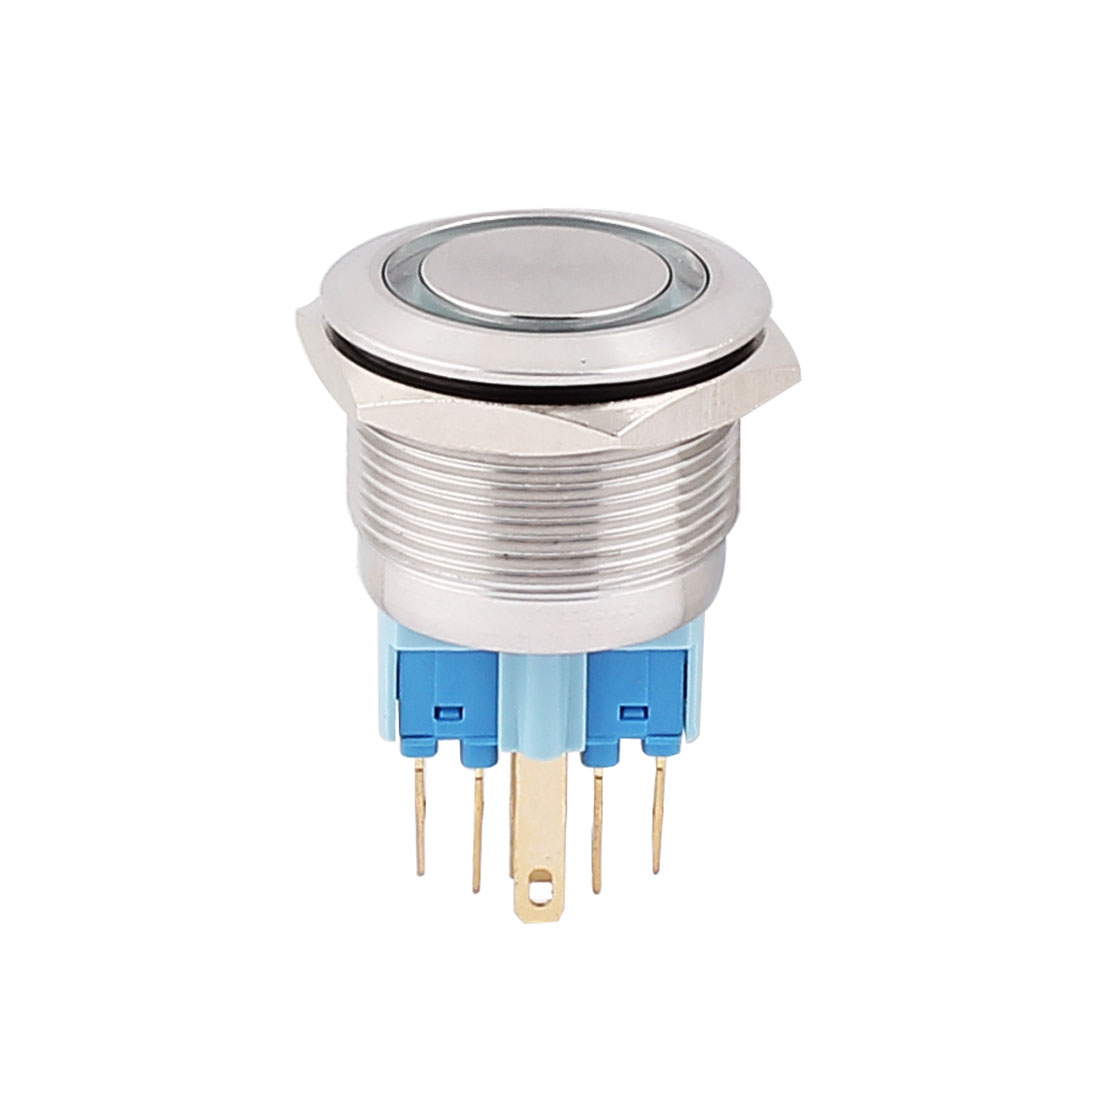 12V 22mm Dia Thread Green LED Angle Eyes Momentary Metal Pushbutton Switch